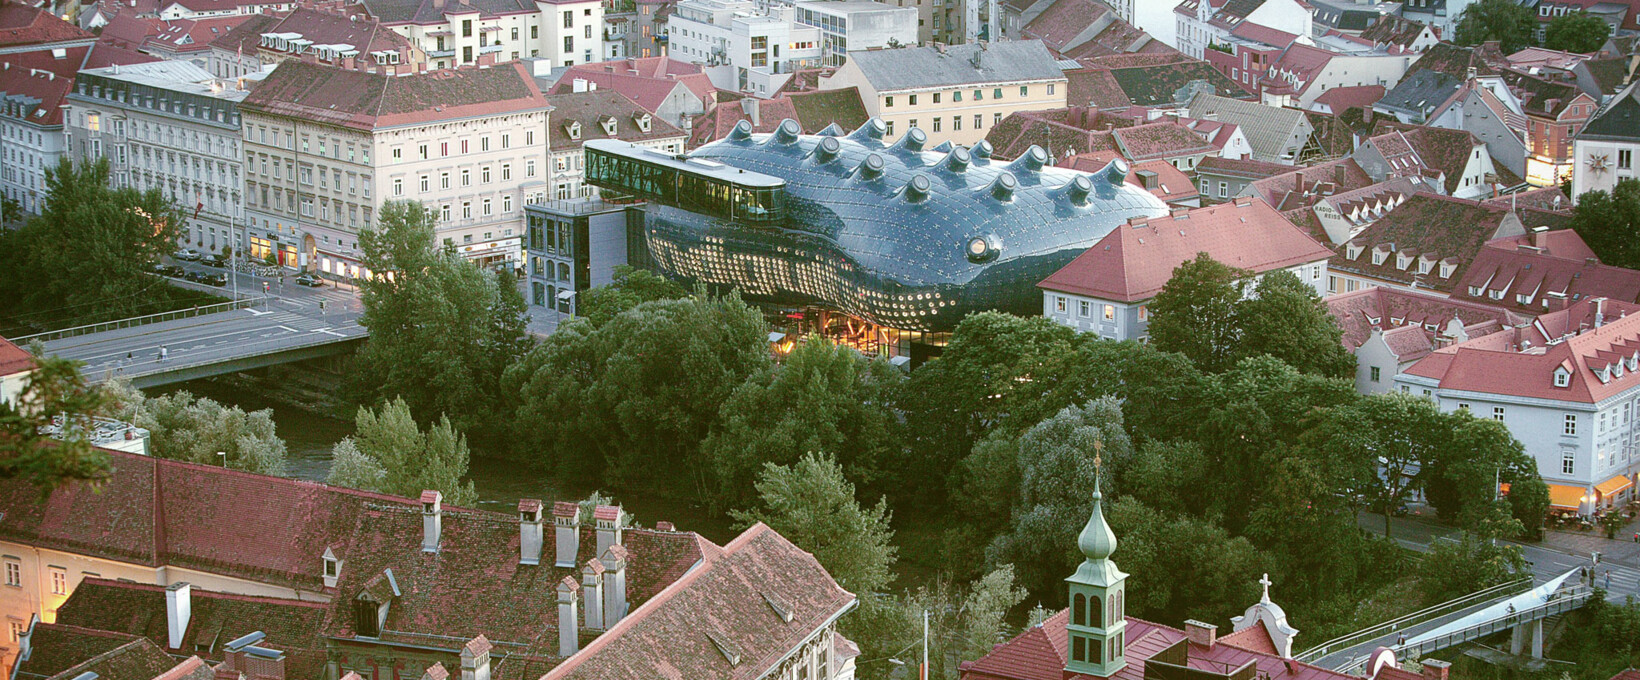 Art house panorama view | Graz | © Graz Tourismus | Harry Schiffer